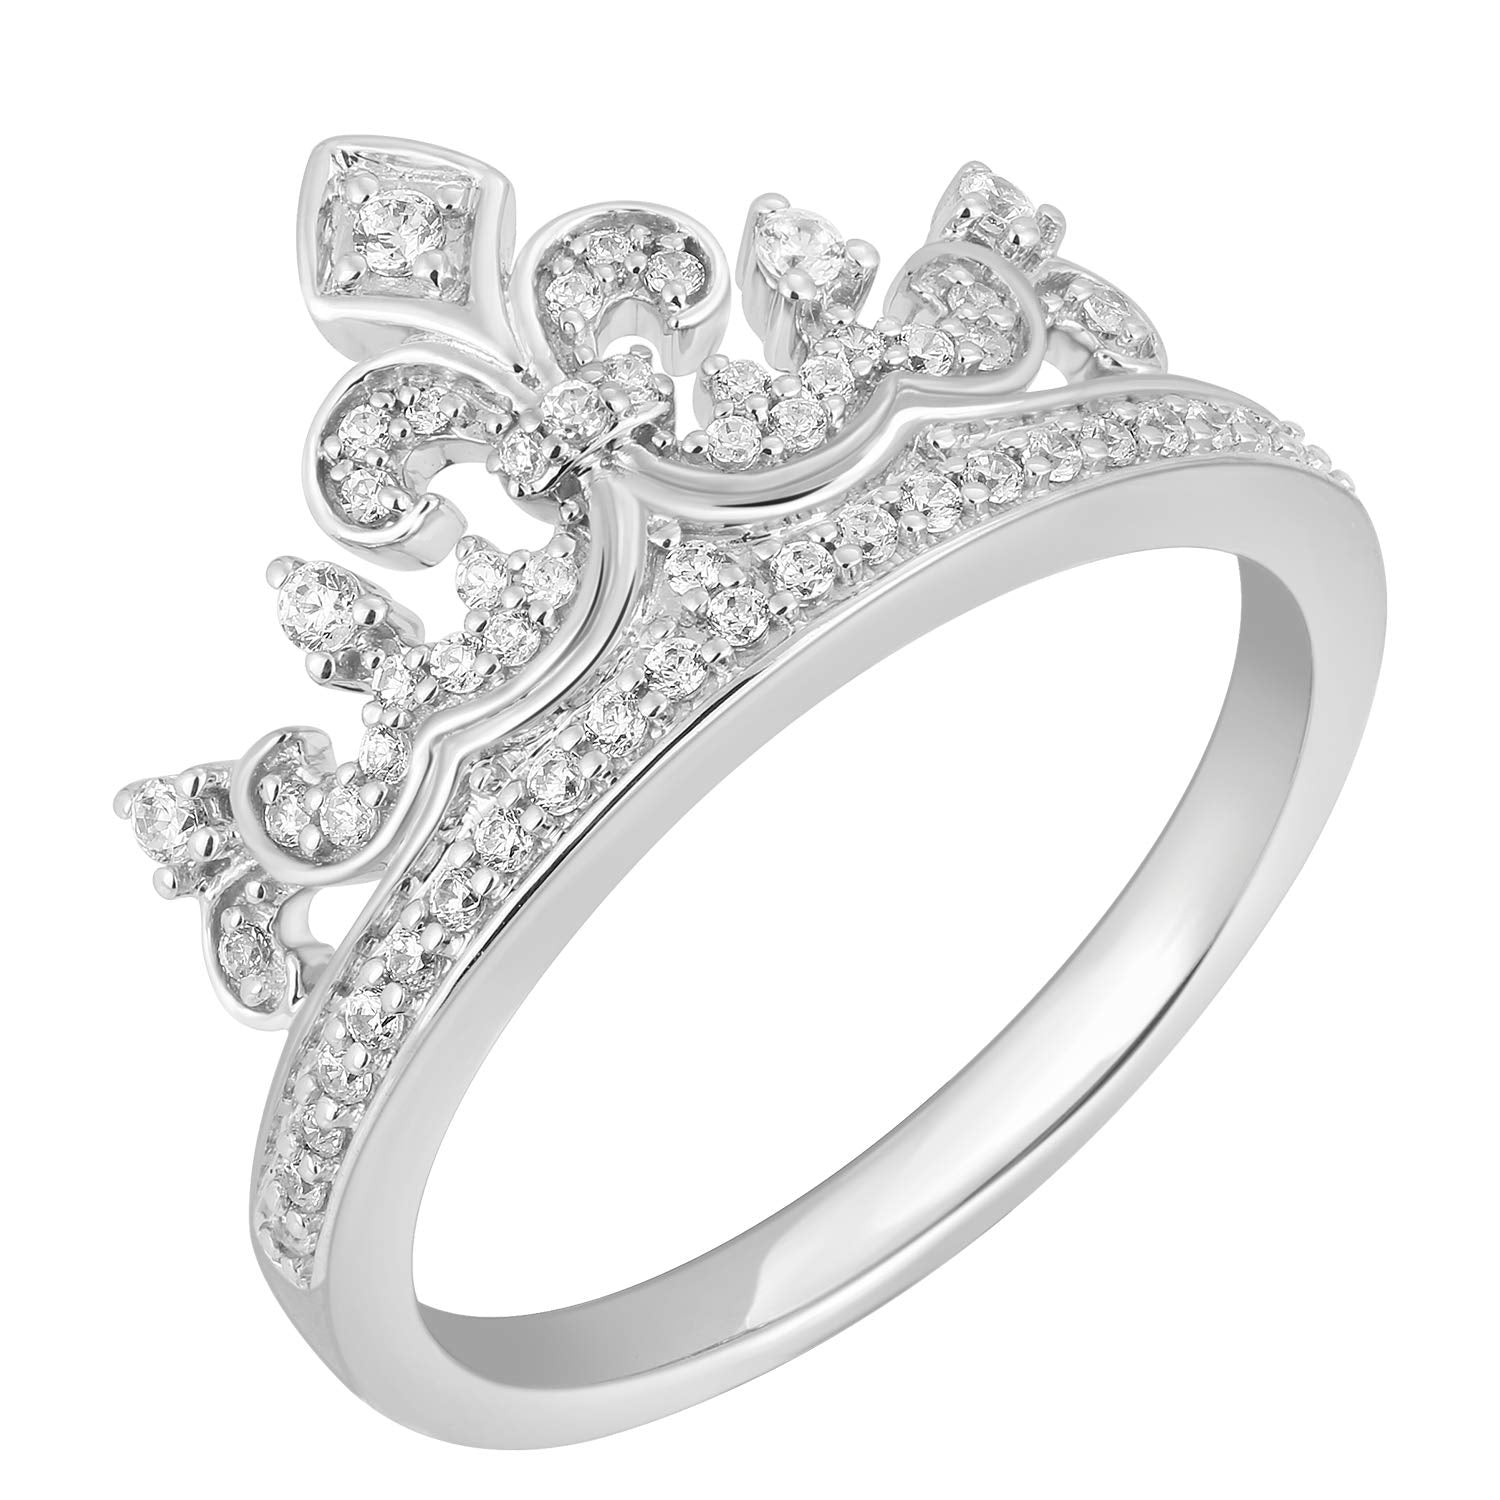 enchanted_disney-majestic-princess_crown_ring-sterling_silver_1/4CTTW_1